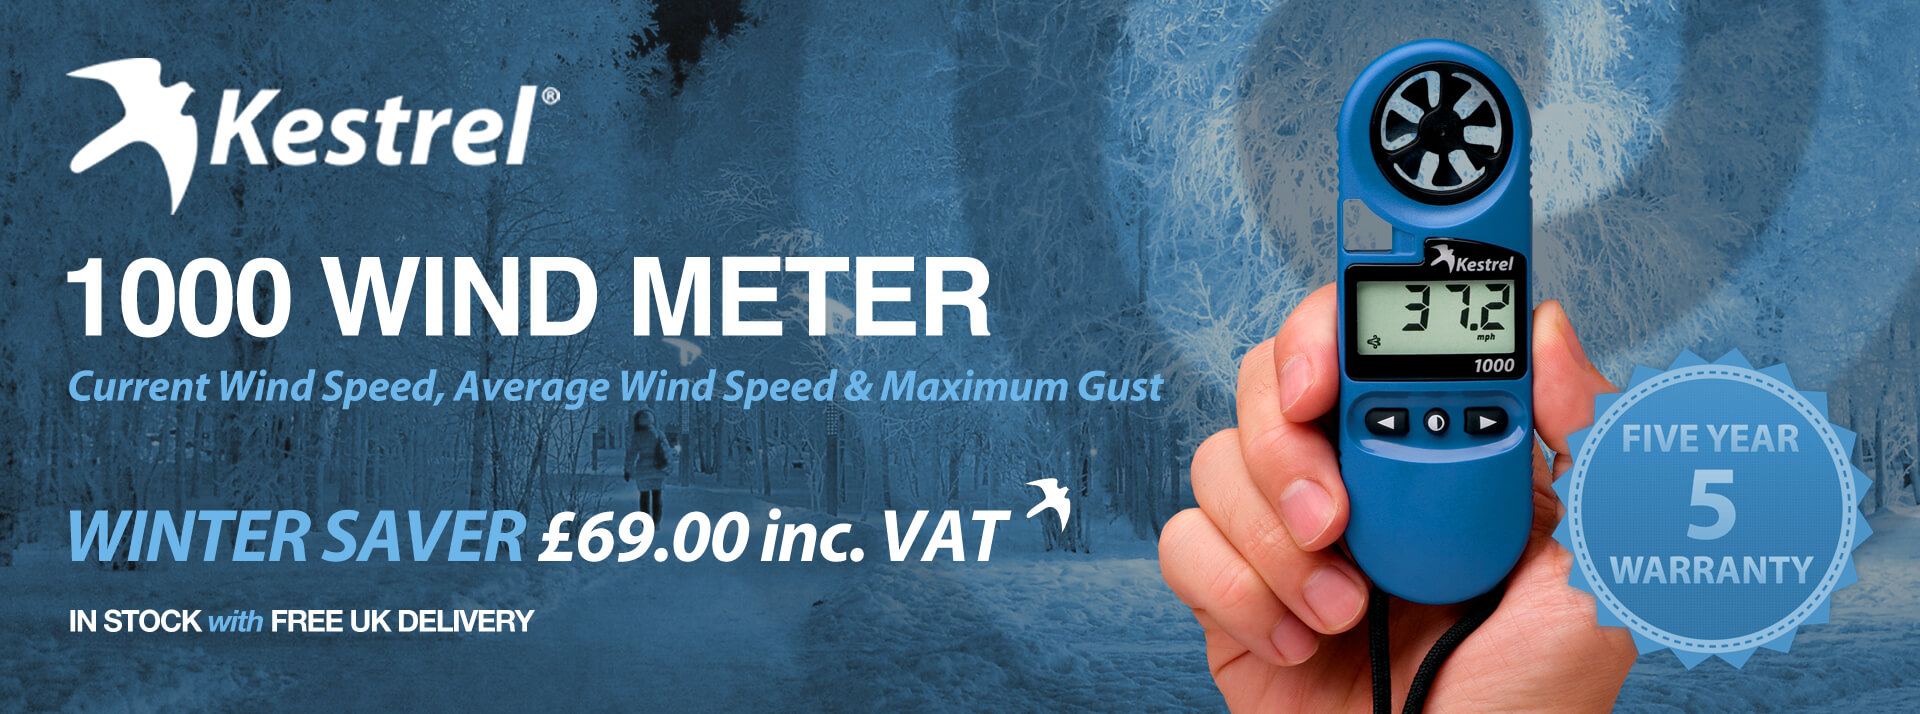 Kestrel 1000 Winter Banner »